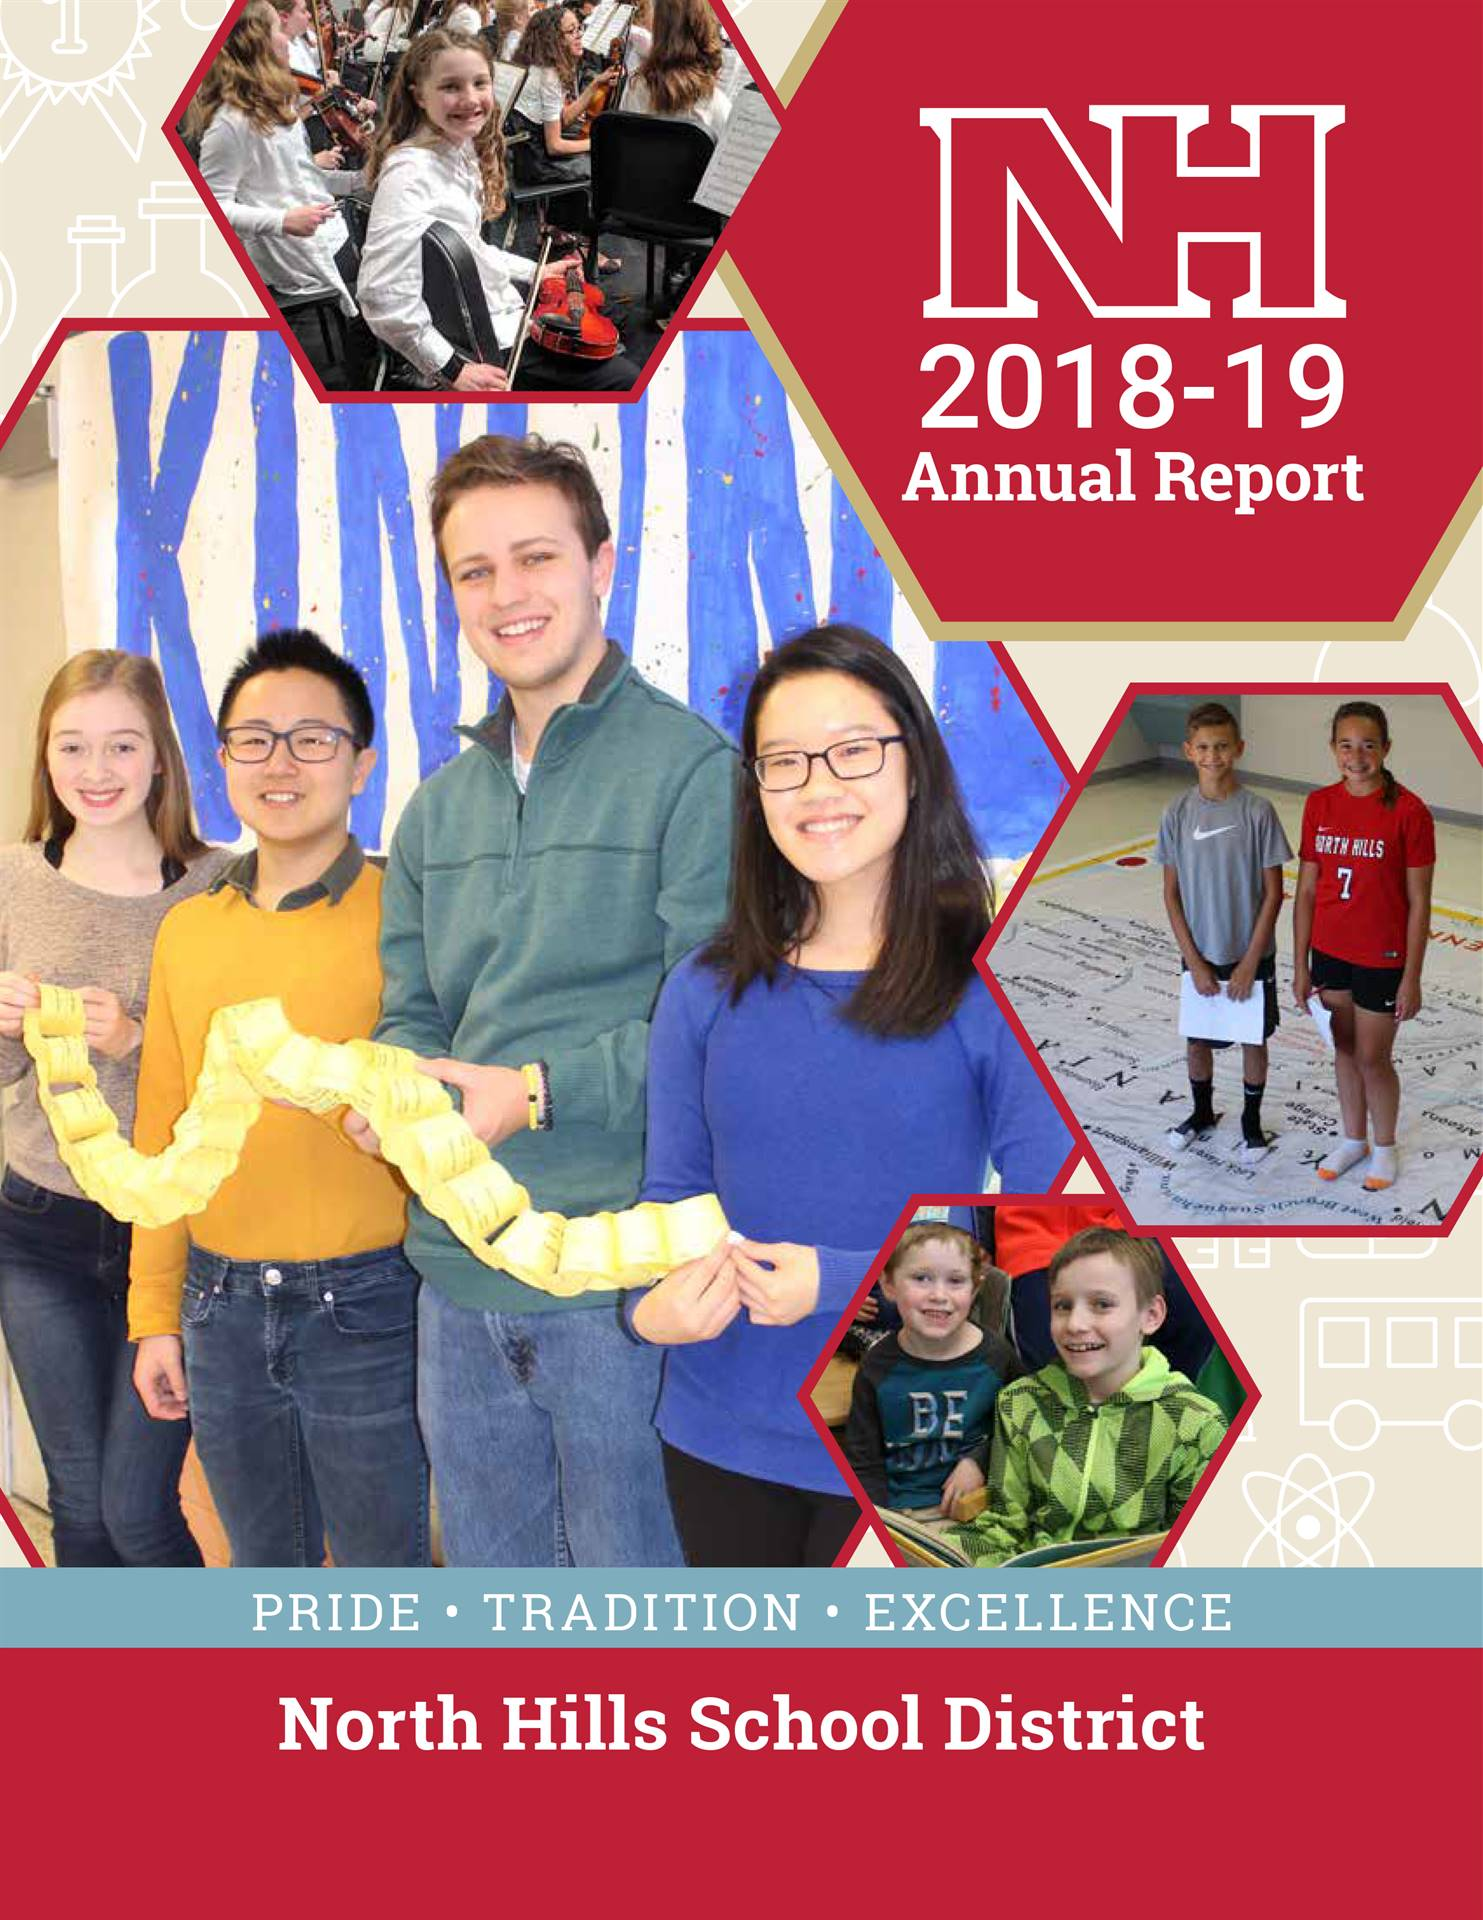 2018-19 NHSD Annual Report